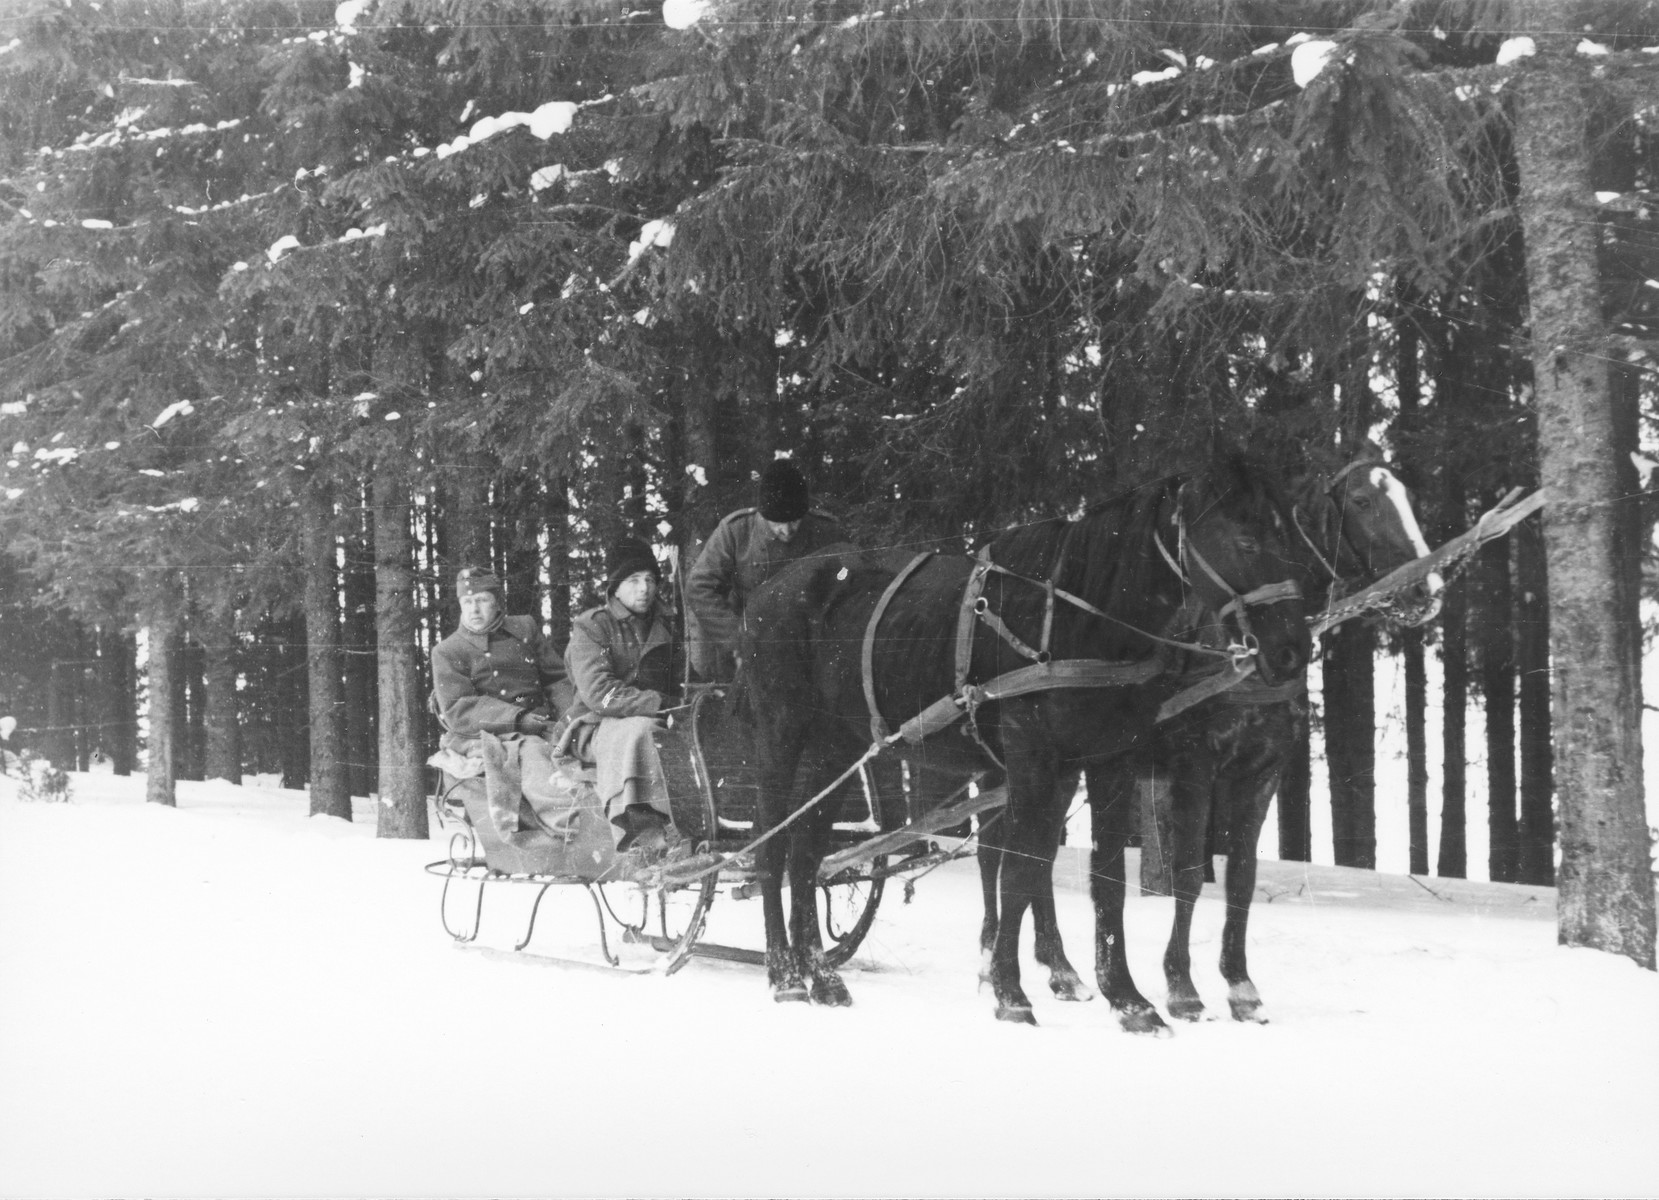 The Hungarian commanders of Company 108/57 in a horse-drawn sleigh.